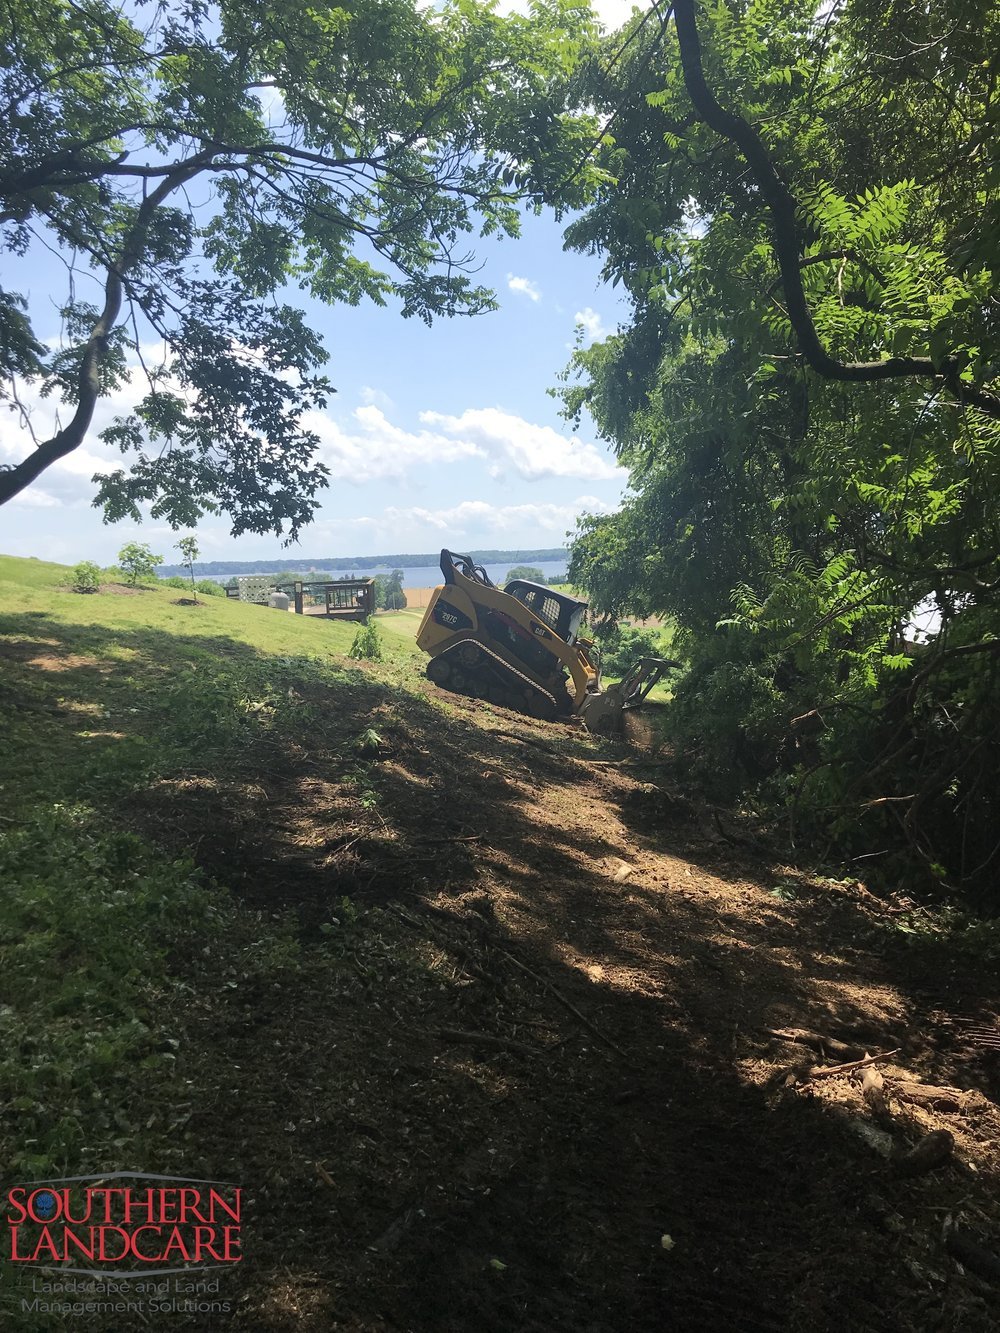 Clearing invasive species with our CAT MTL and Denis Cimaf forestry mulcher to Improve the view in Calvert County, MD. No permits or additional erosion control measures required.